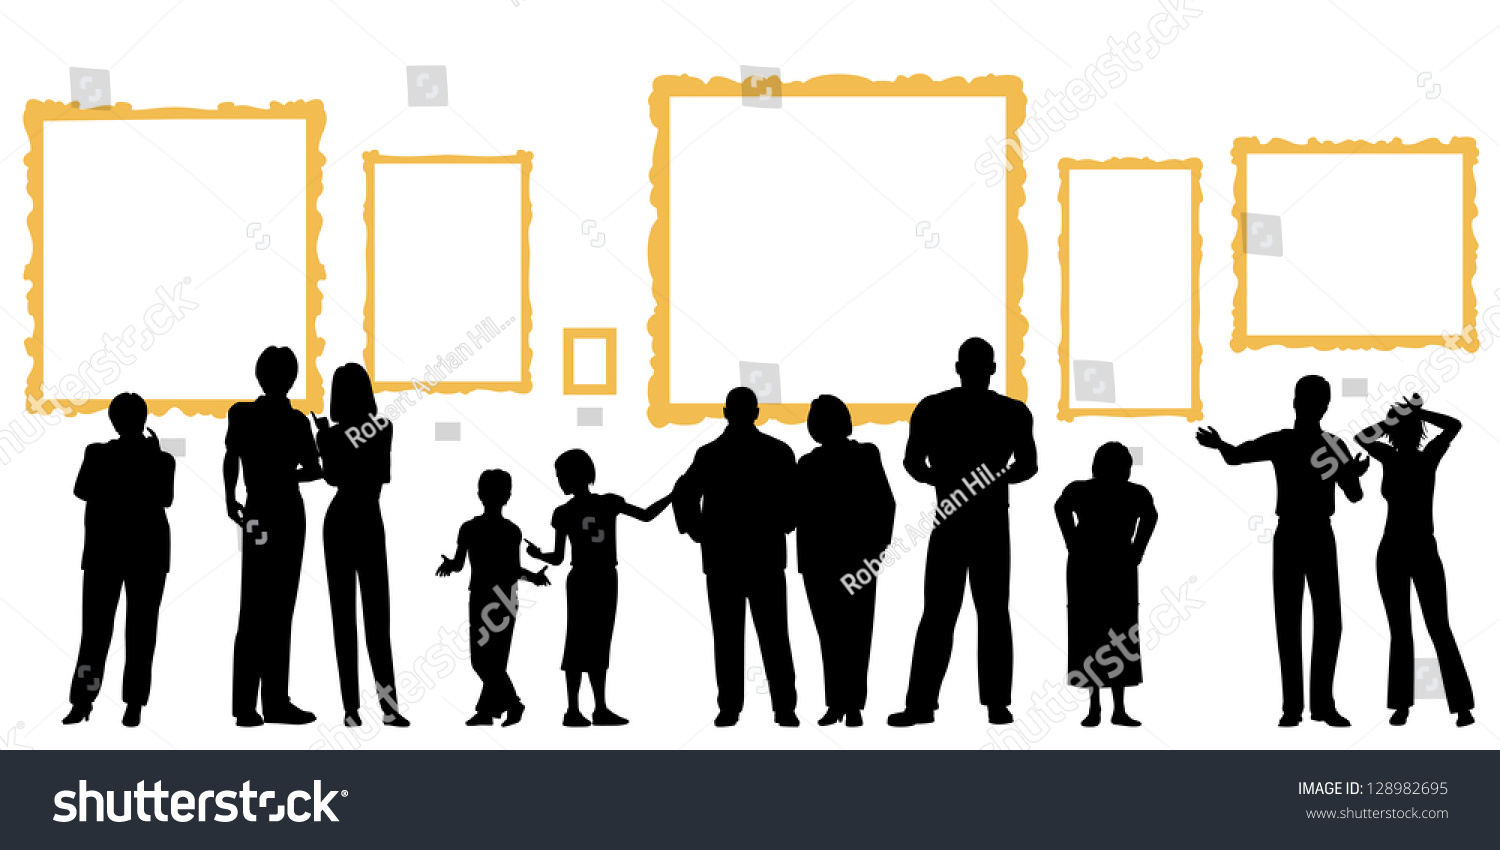 Stock Vector Editable Vector Silhouettes Of Diverse People At An Art G...